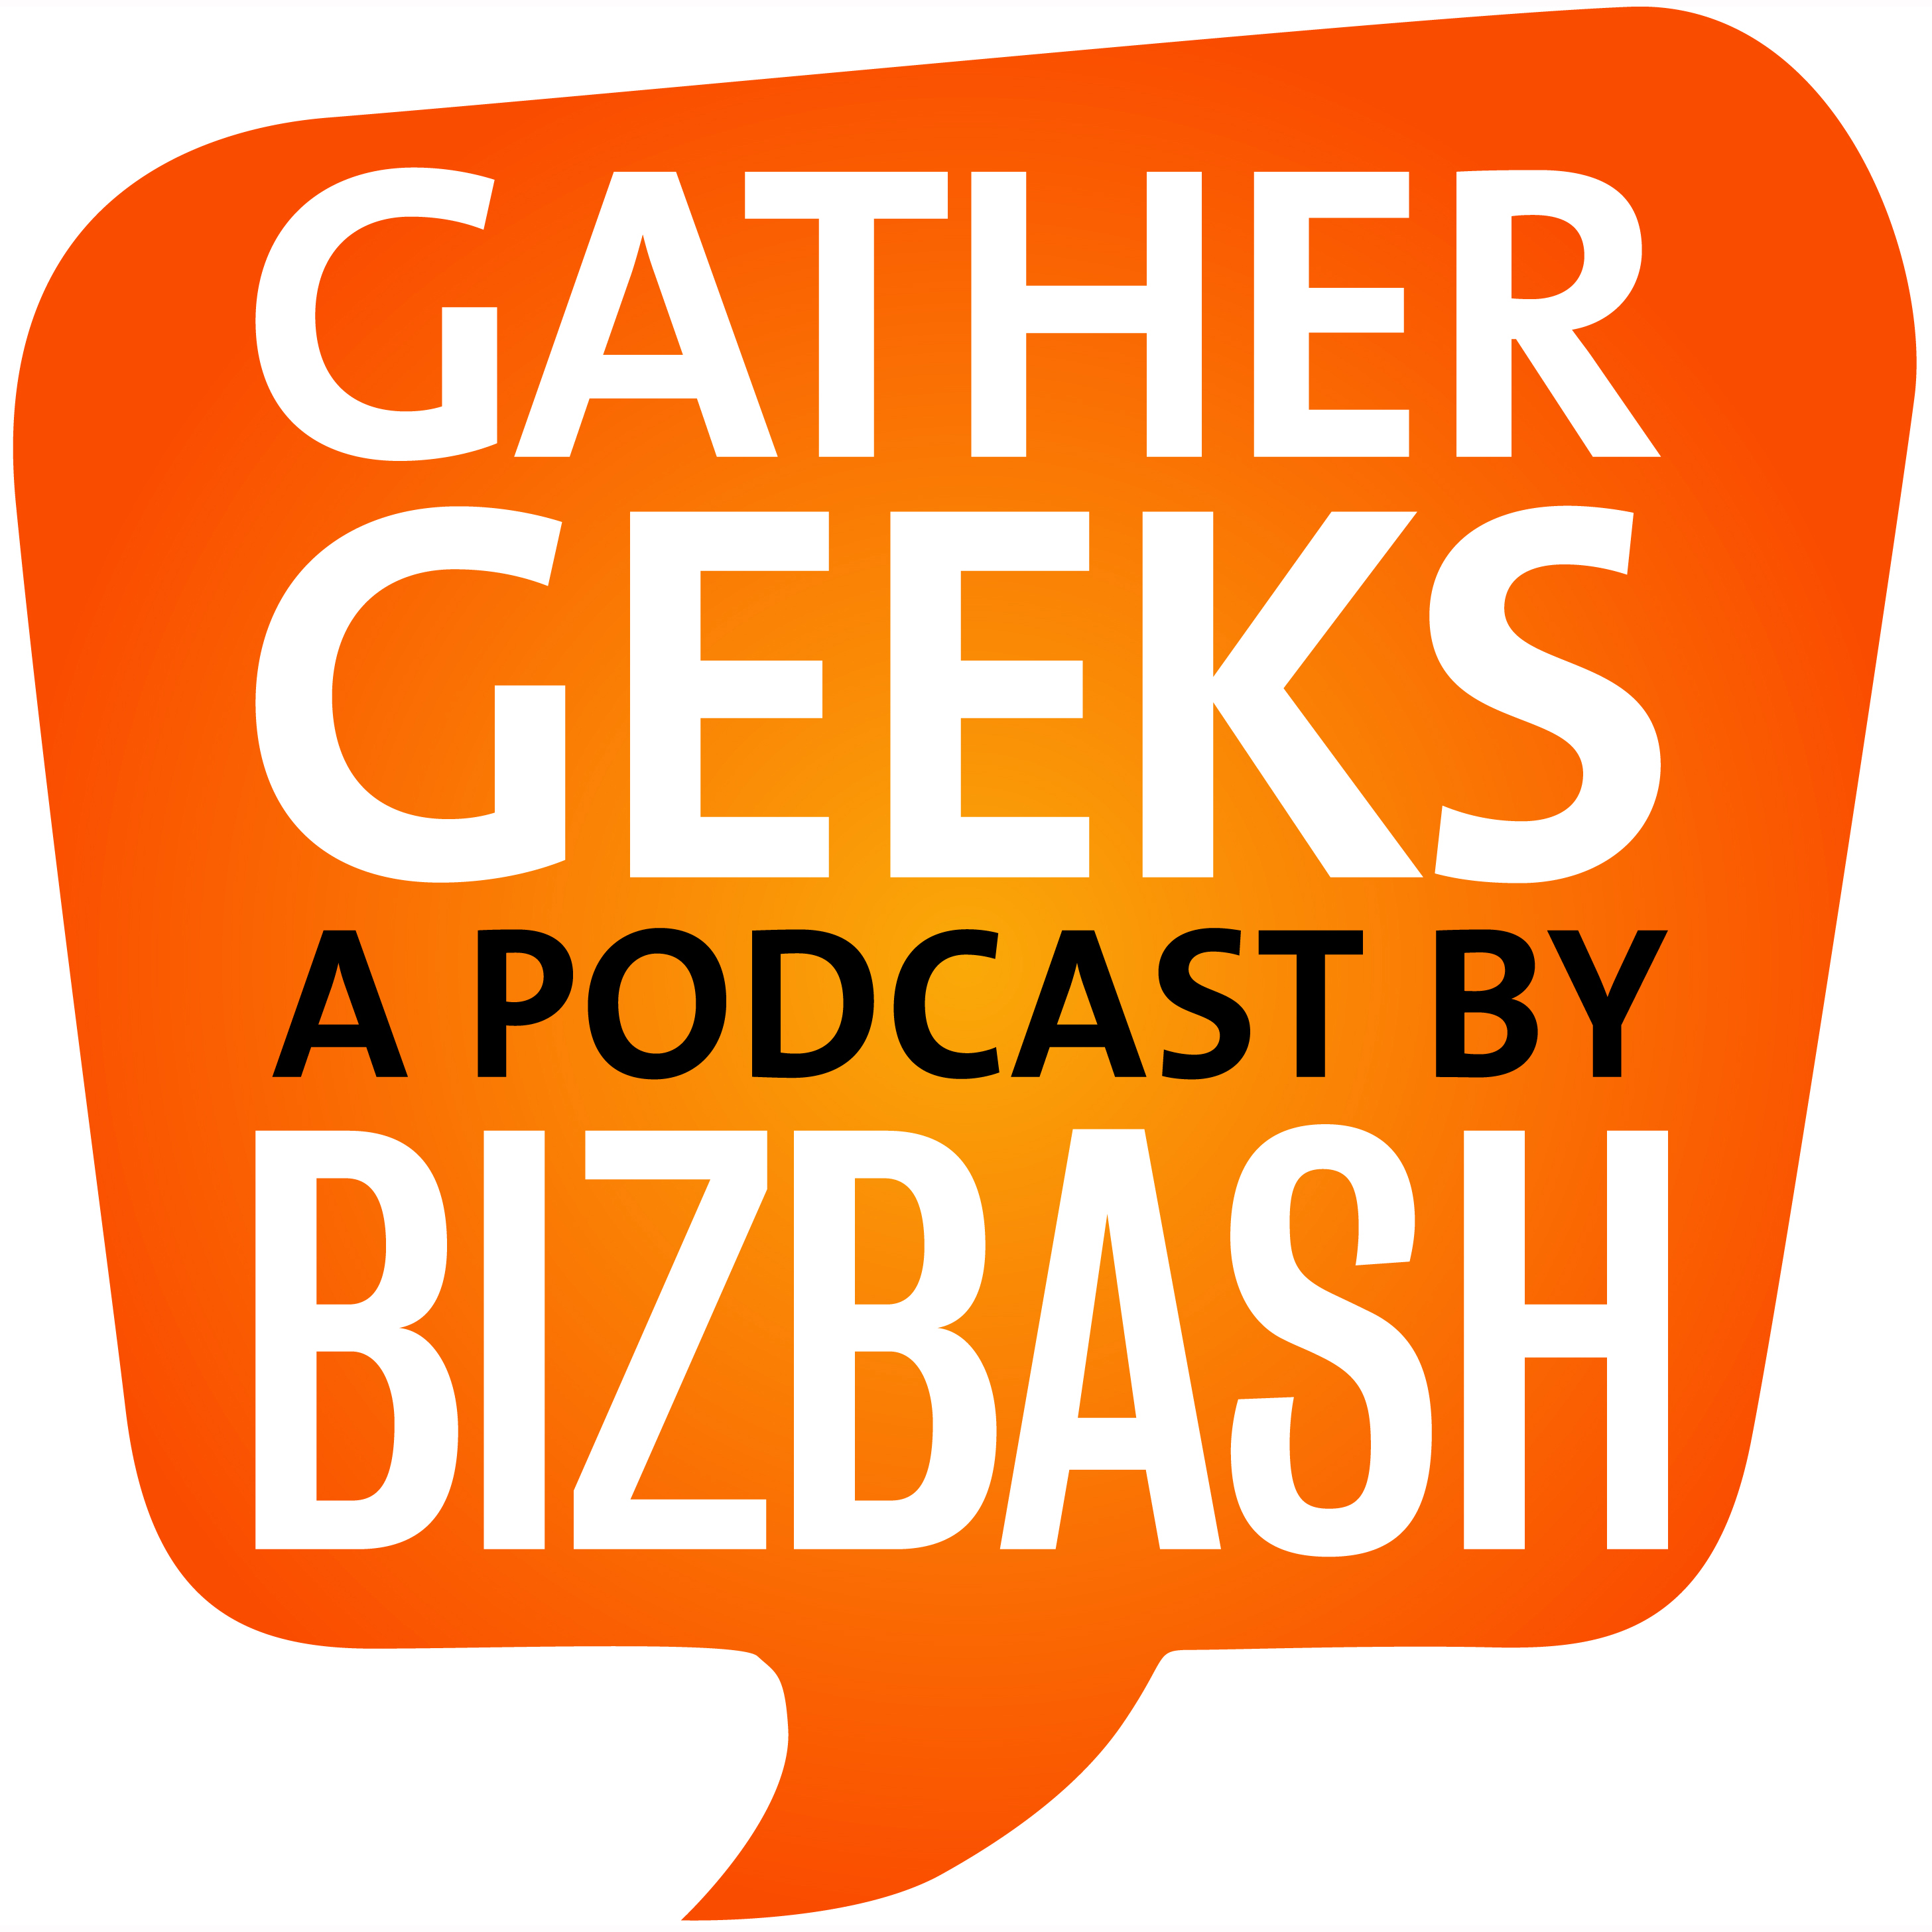 GatherGeeks by BizBash: The Event Industry Podcast show art